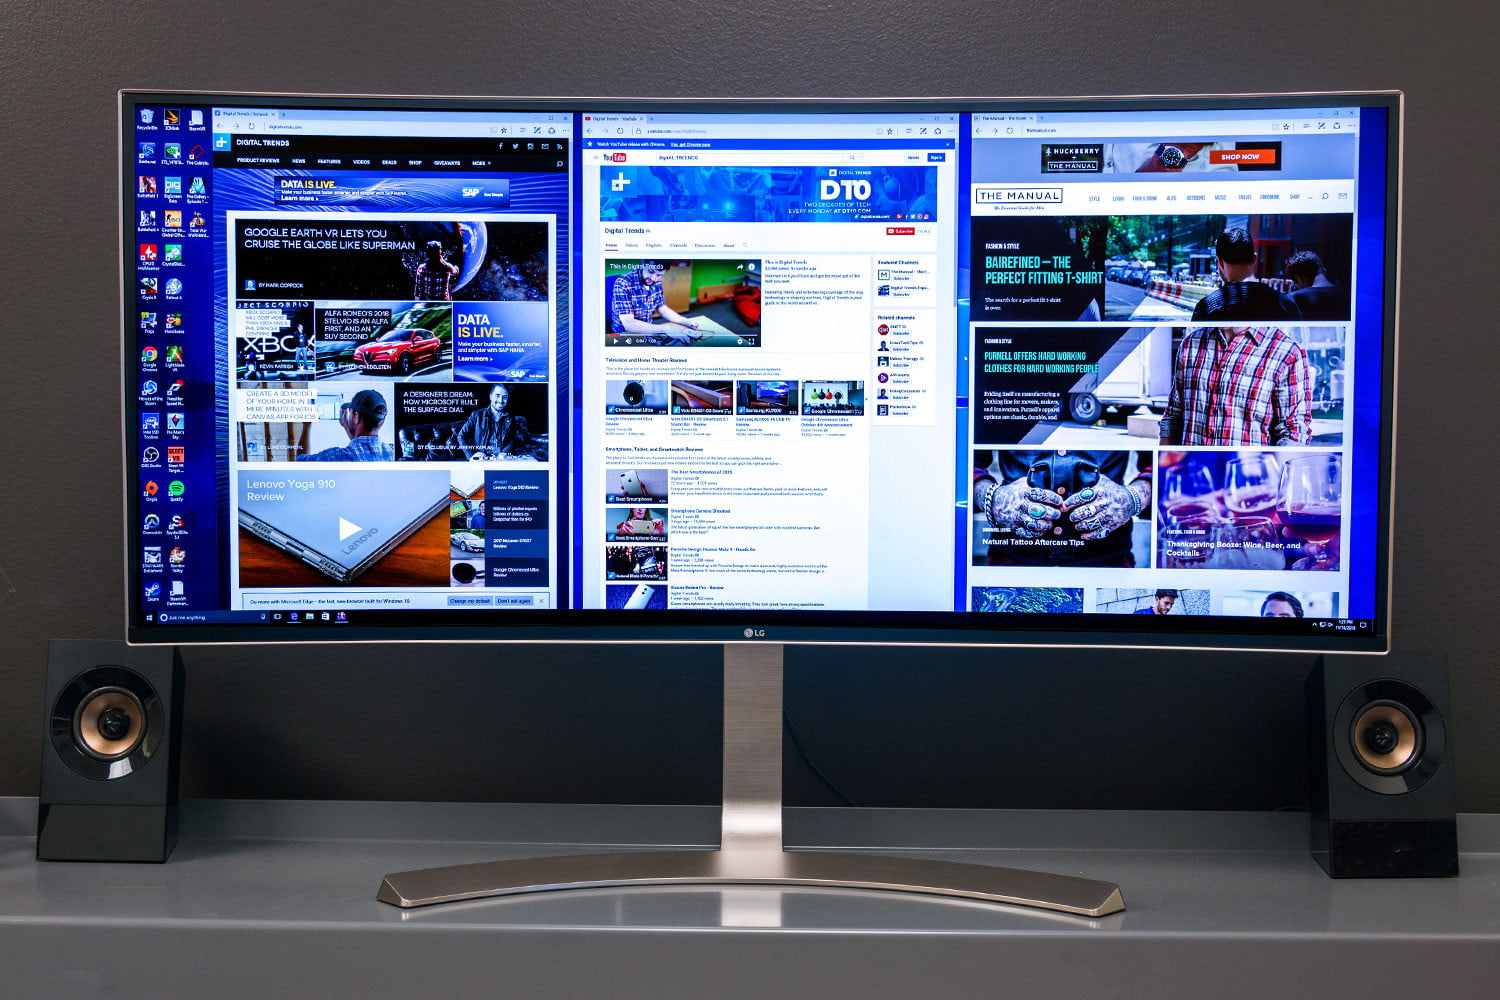 Lg 38uc99 Ultrawide Monitor Review Digital Trends